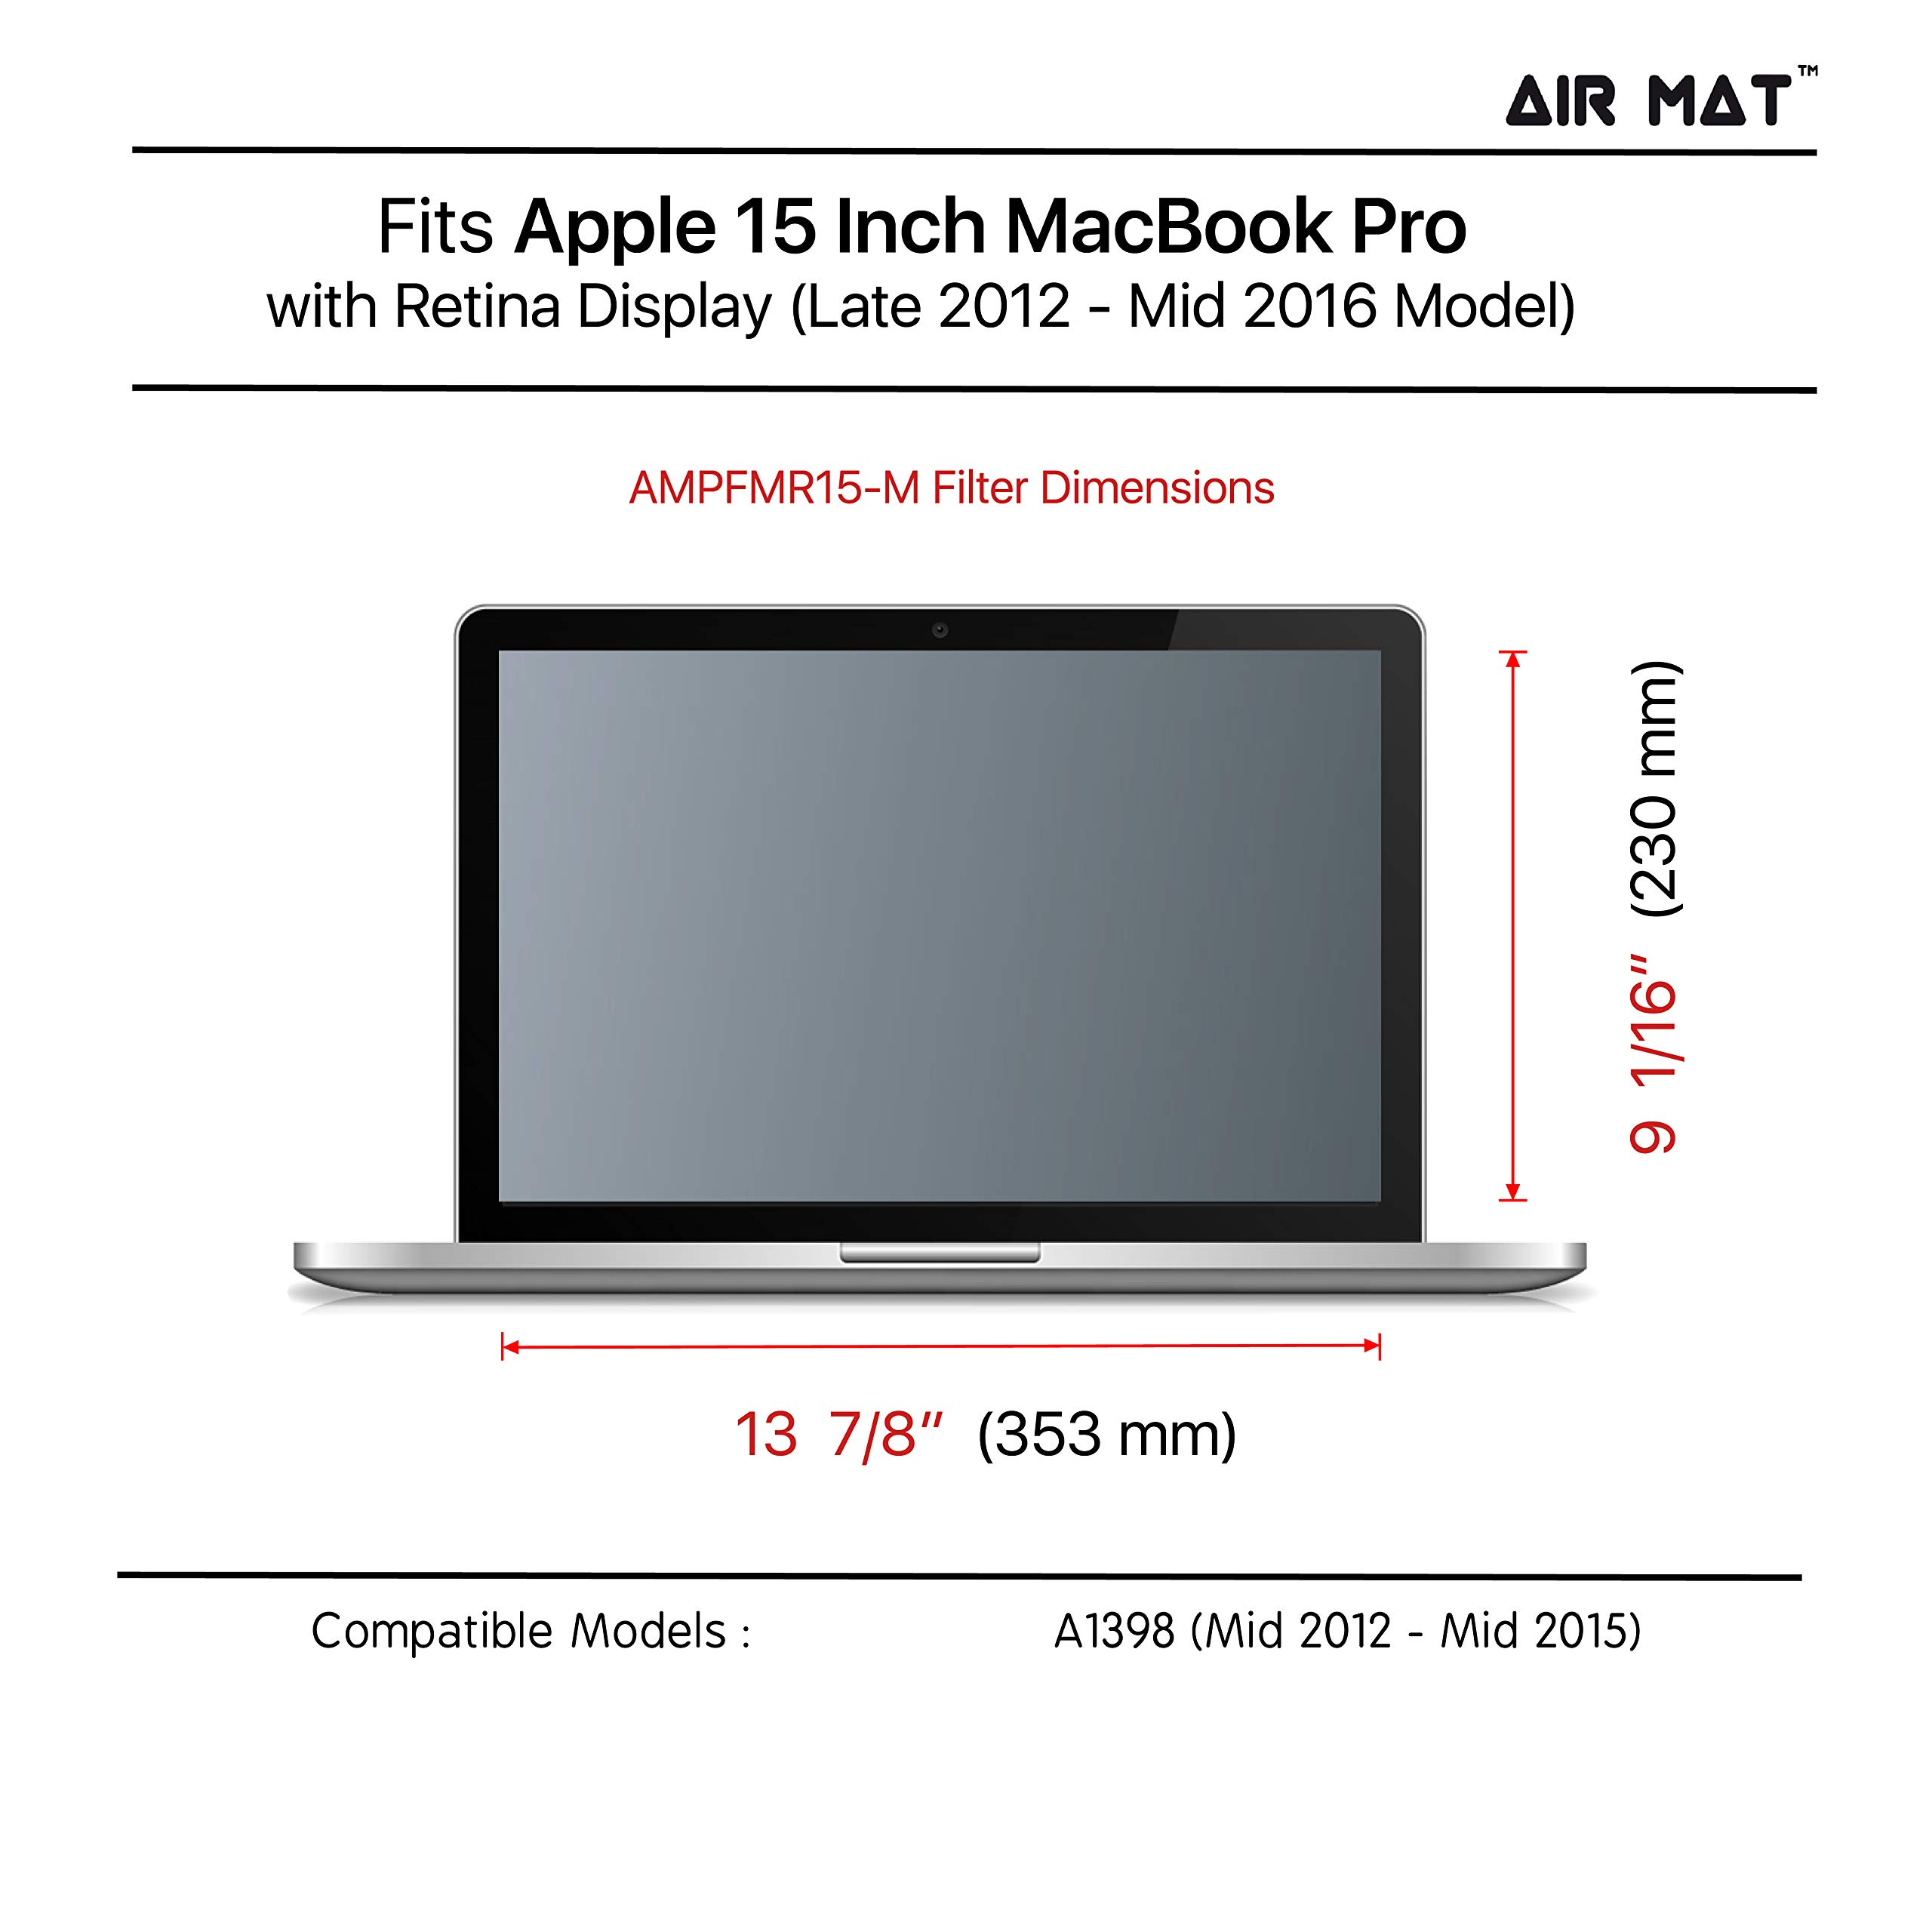 15 Inch MacBook Pro Privacy Filter with Retina Screen Display, best as removable Anti Glare Blue Light Protector Film for data confidentiality - for Apple Model A1398 (MacProR 15'') by Air Mat (Image #4)